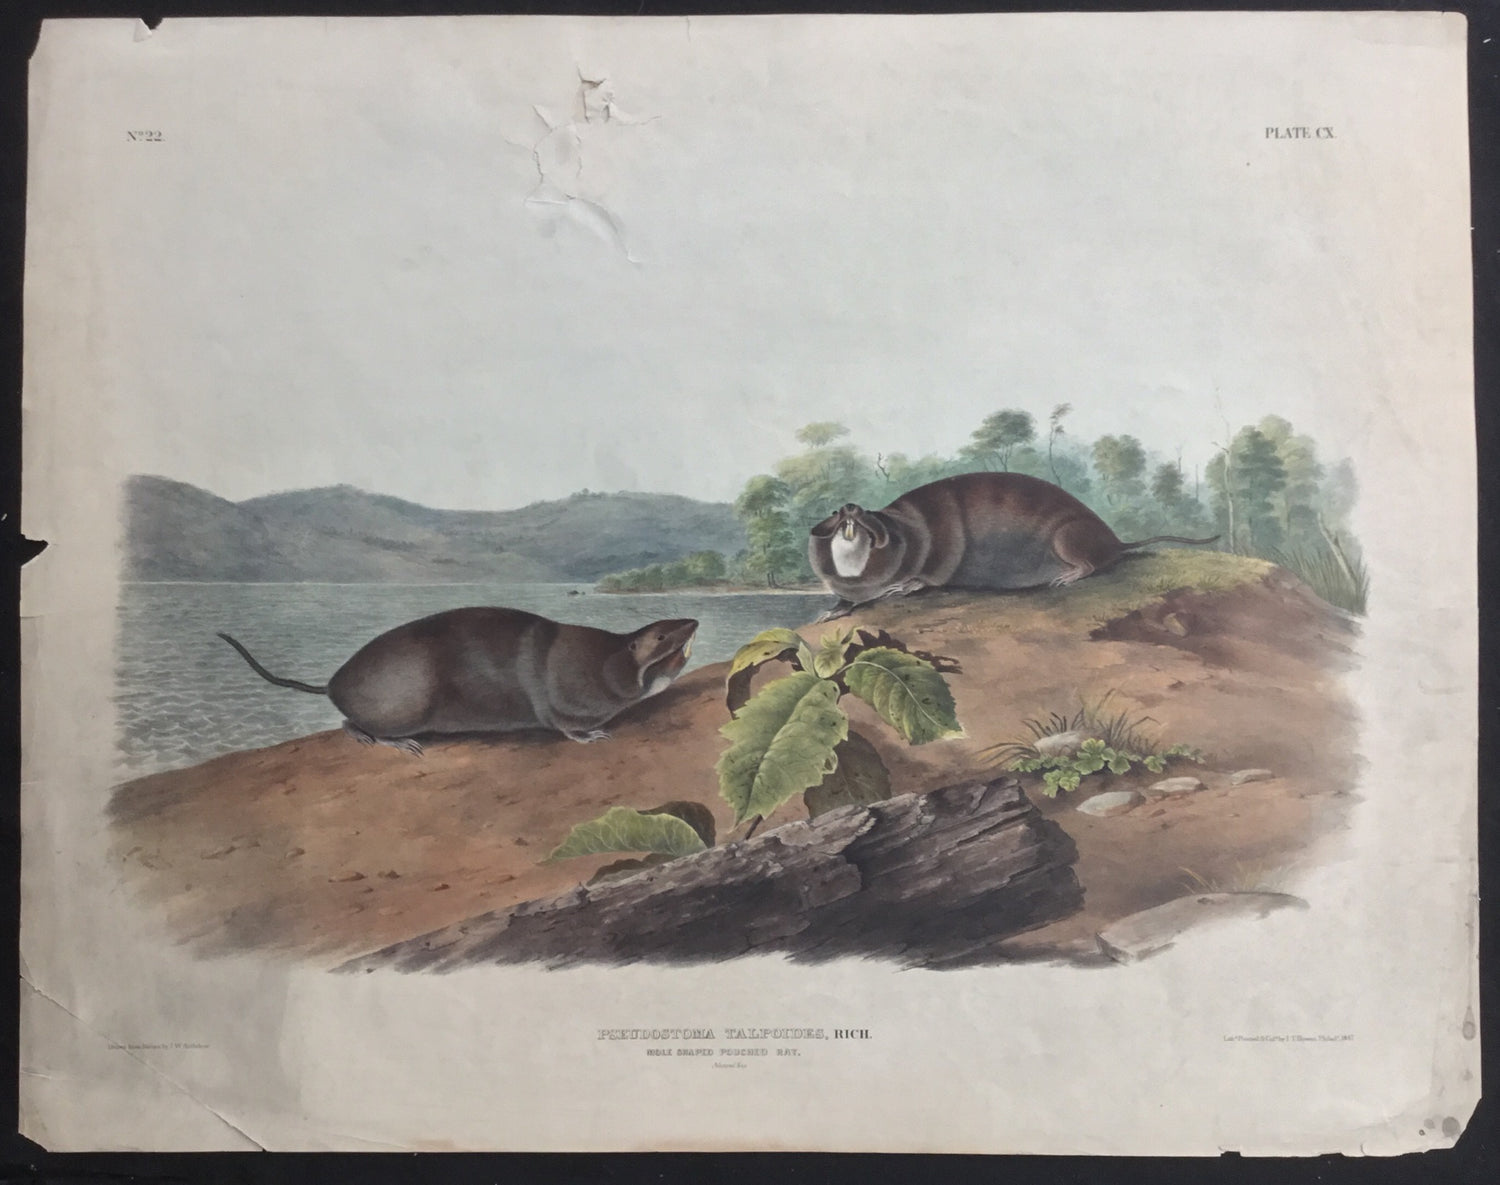 Lord-Hopkins Collection (Bowen pattern print), Audubon Original Imperial plate 110, Mole Shaped Pouched Rat